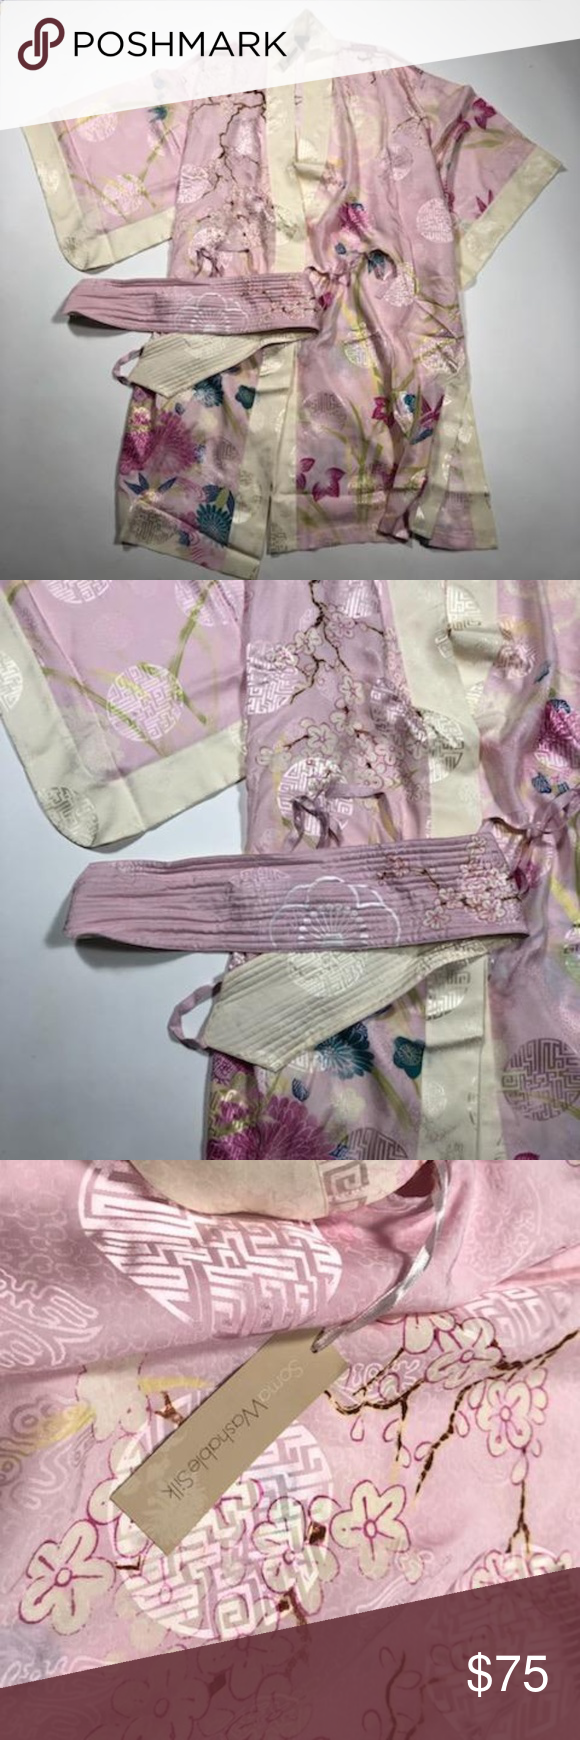 Soma Asian Garden Nagoya Robe Petal Pink New This Soma Asian Garden Nagoya Robe Is New With all Tags. Never worn. It is made of Washable Silk. Kimono Sleeves. Measurements  Width from back arm pit to arm pit 24 Inches Length from neck to him 42 Inches Soma Intimates & Sleepwear Robes #asiangarden